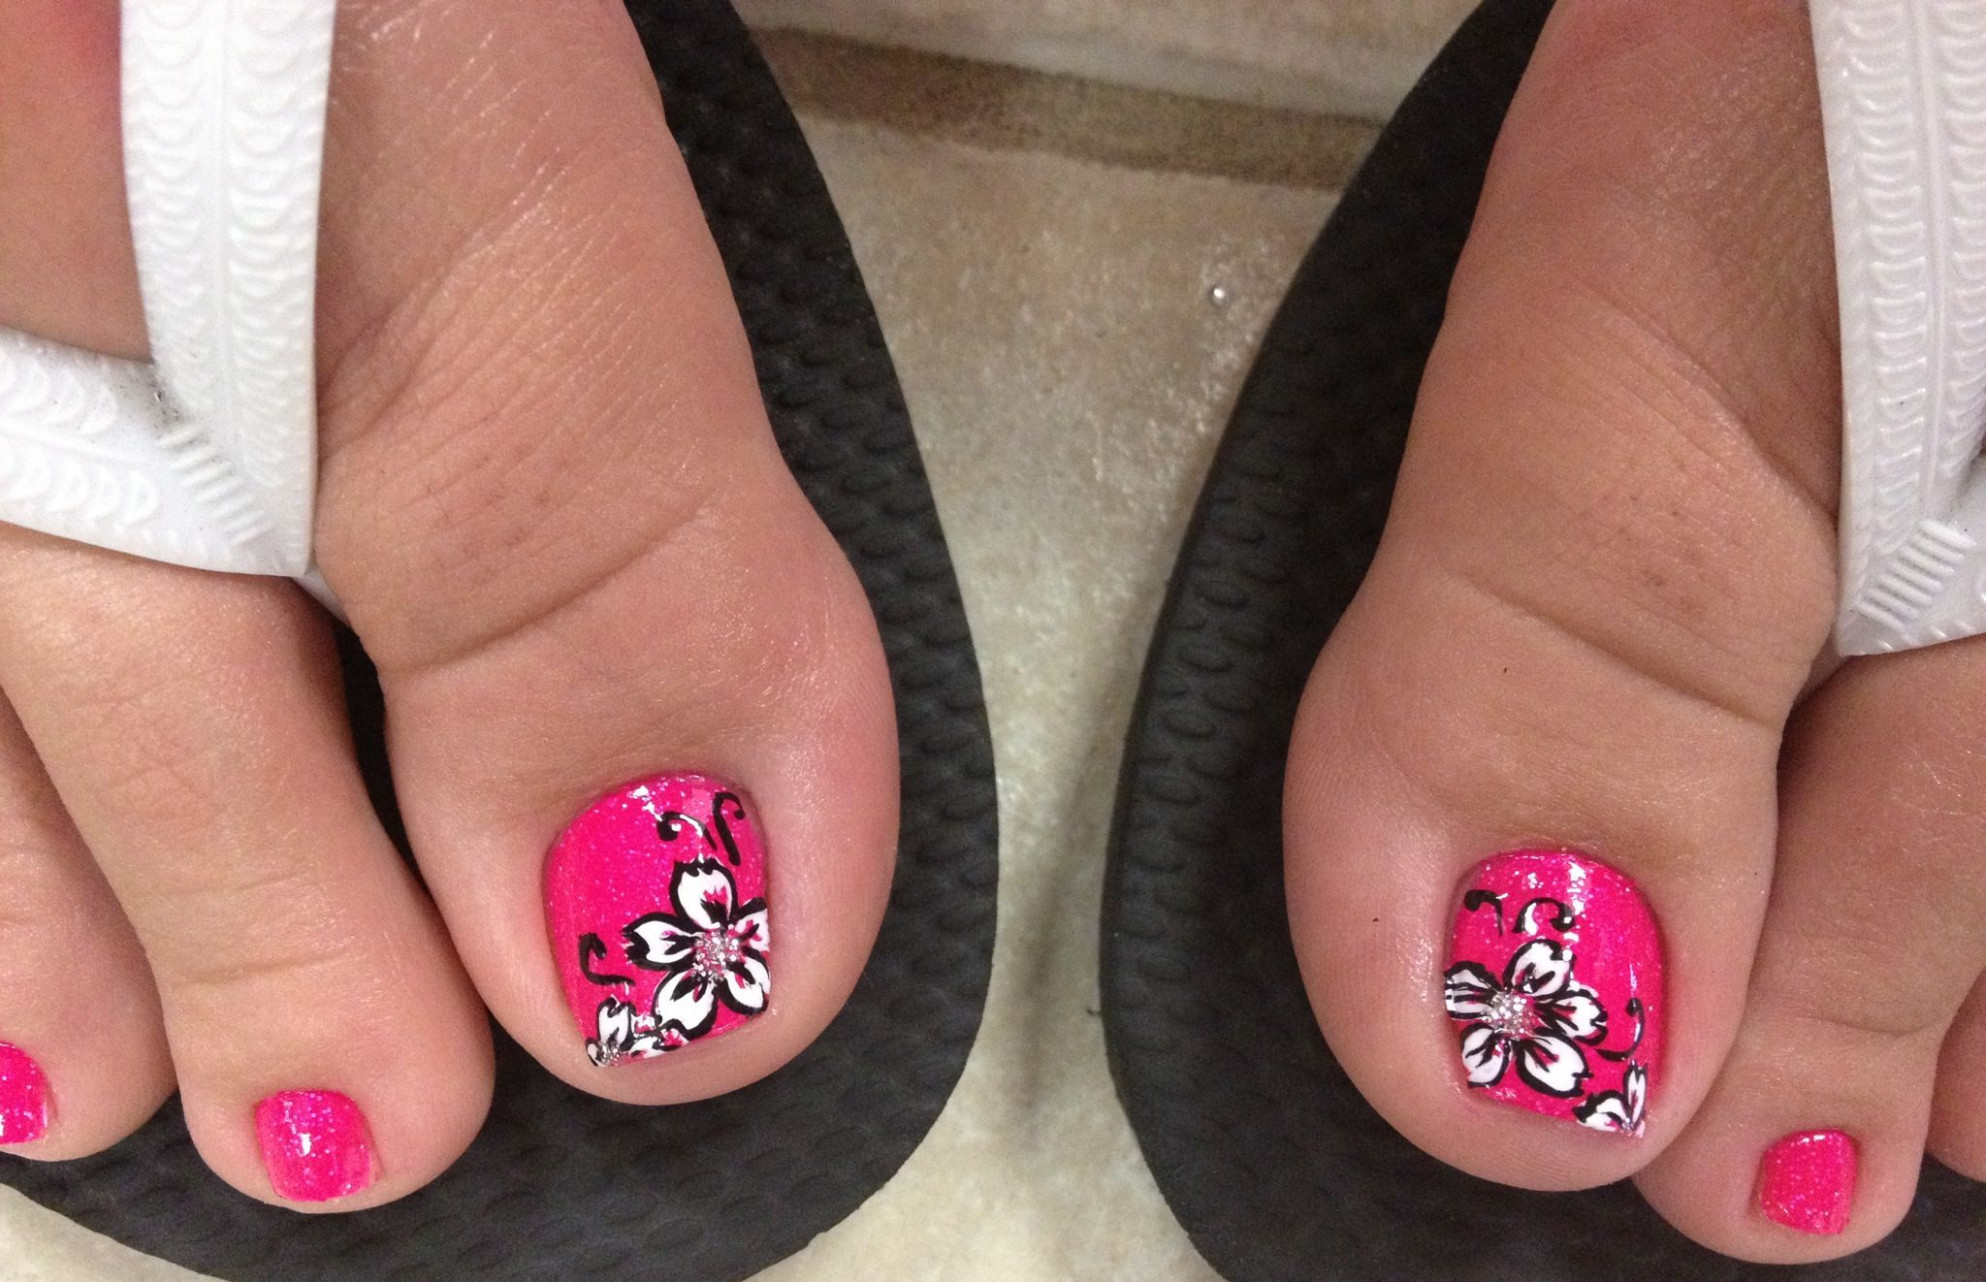 Pin by Hurricane on YOU NAILED IT!  Flower toe nails, Toe nails